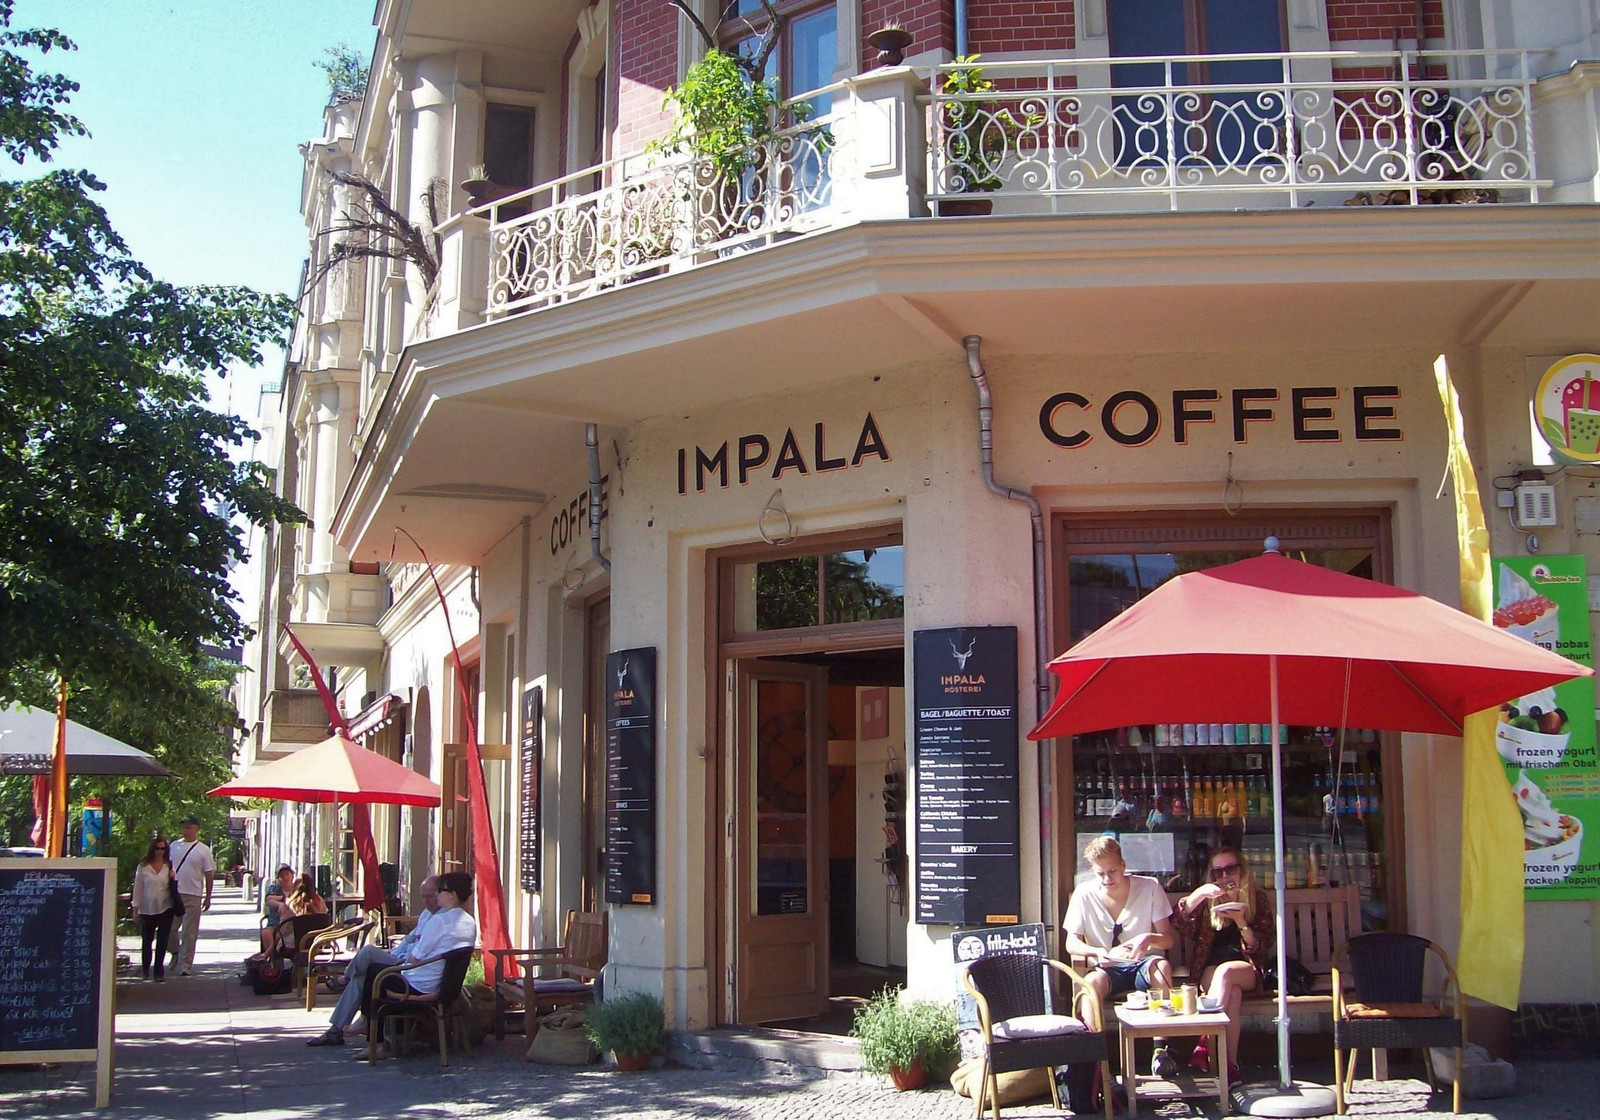 Impala Coffee am Prenzlauer Berg in Berlin